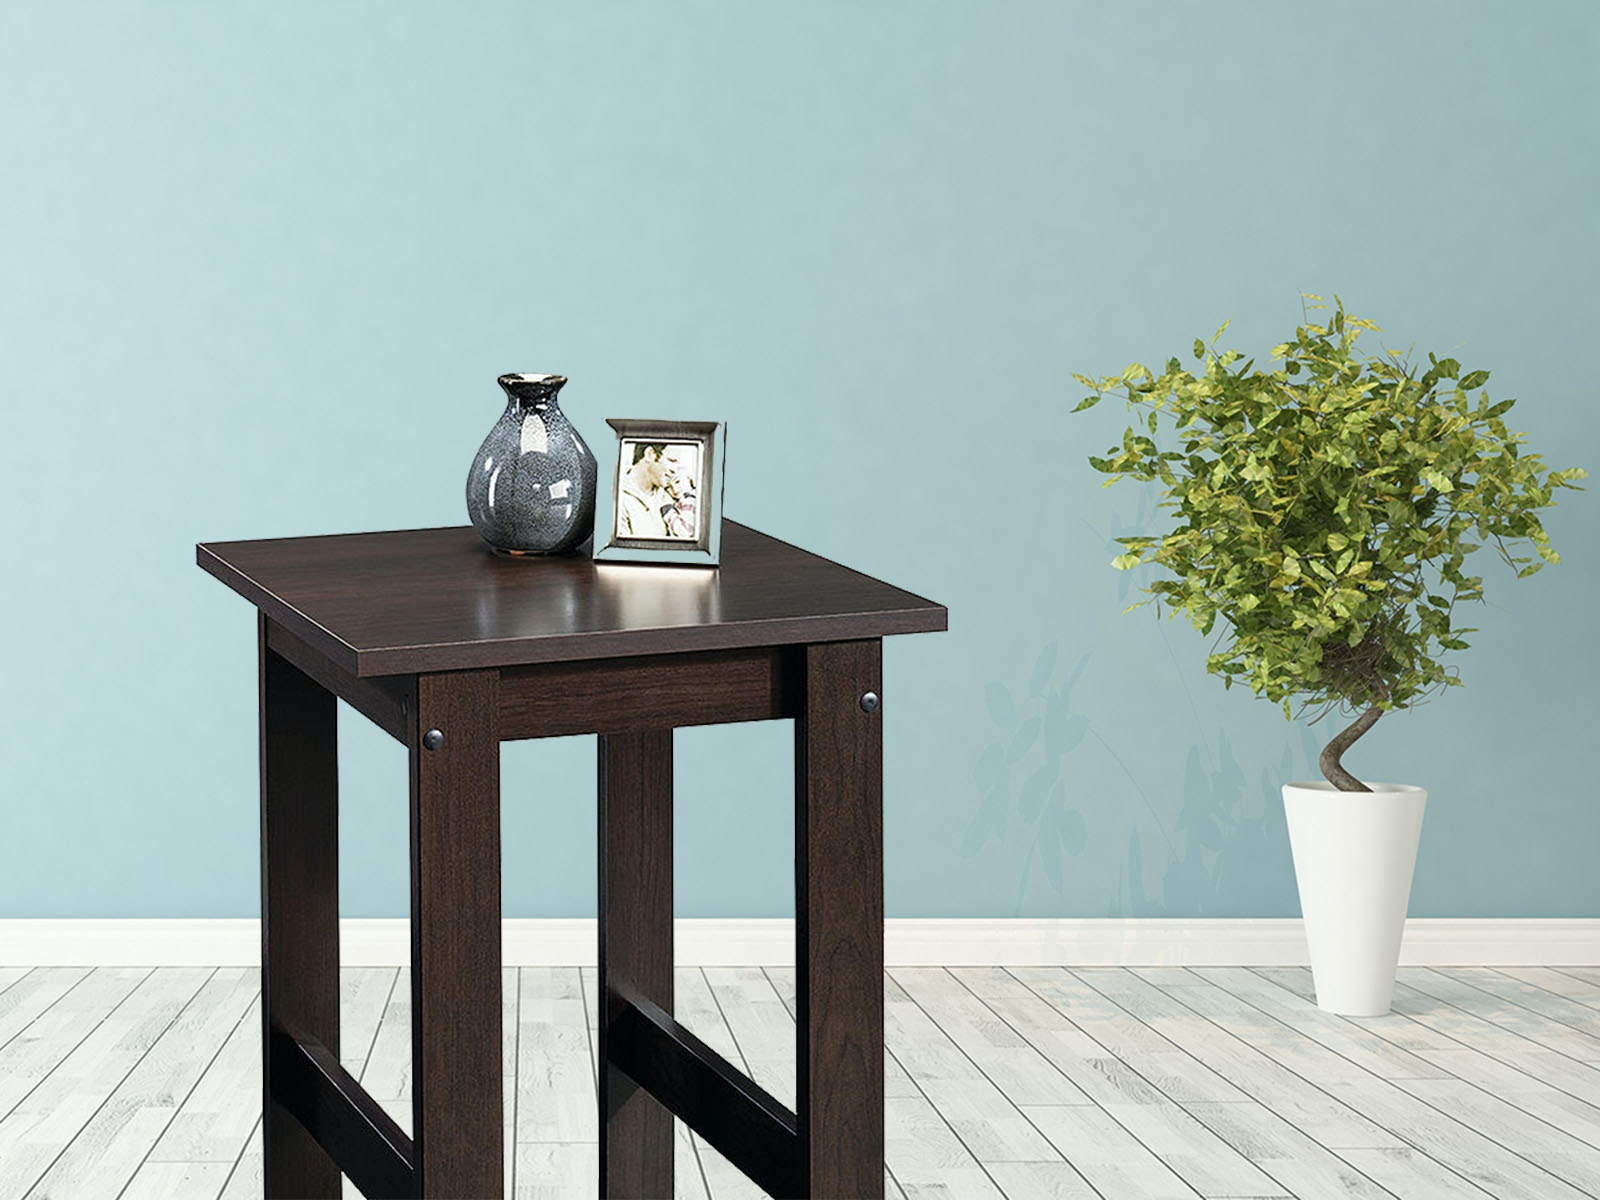 Anend table so your guests won't put their drinks on the floor